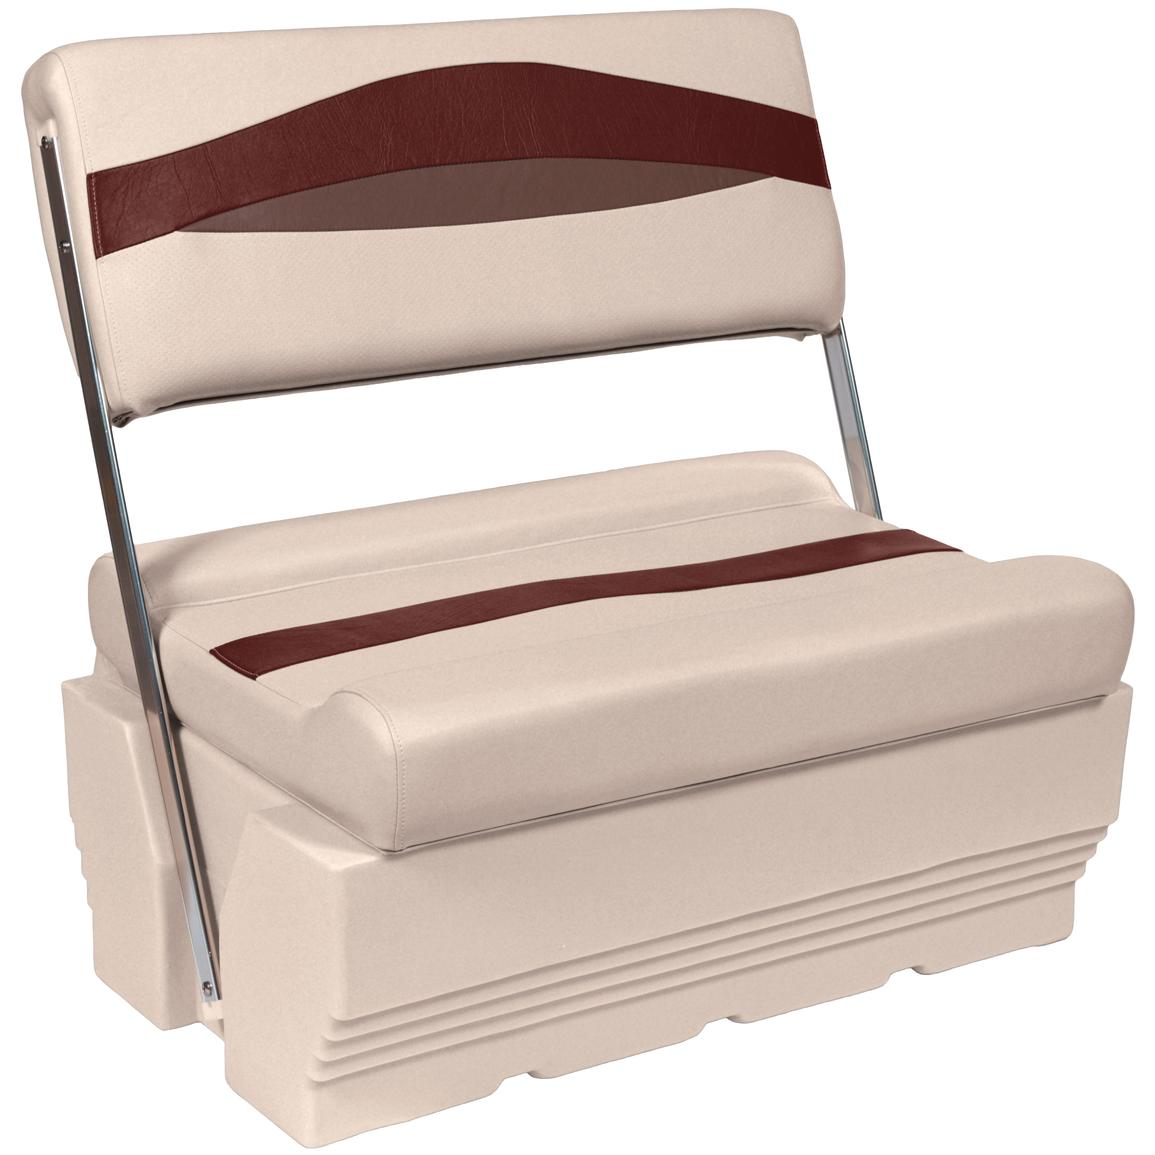 Wise® Premier 1100 Series Pontoon Flip-Flop Seat, Color C